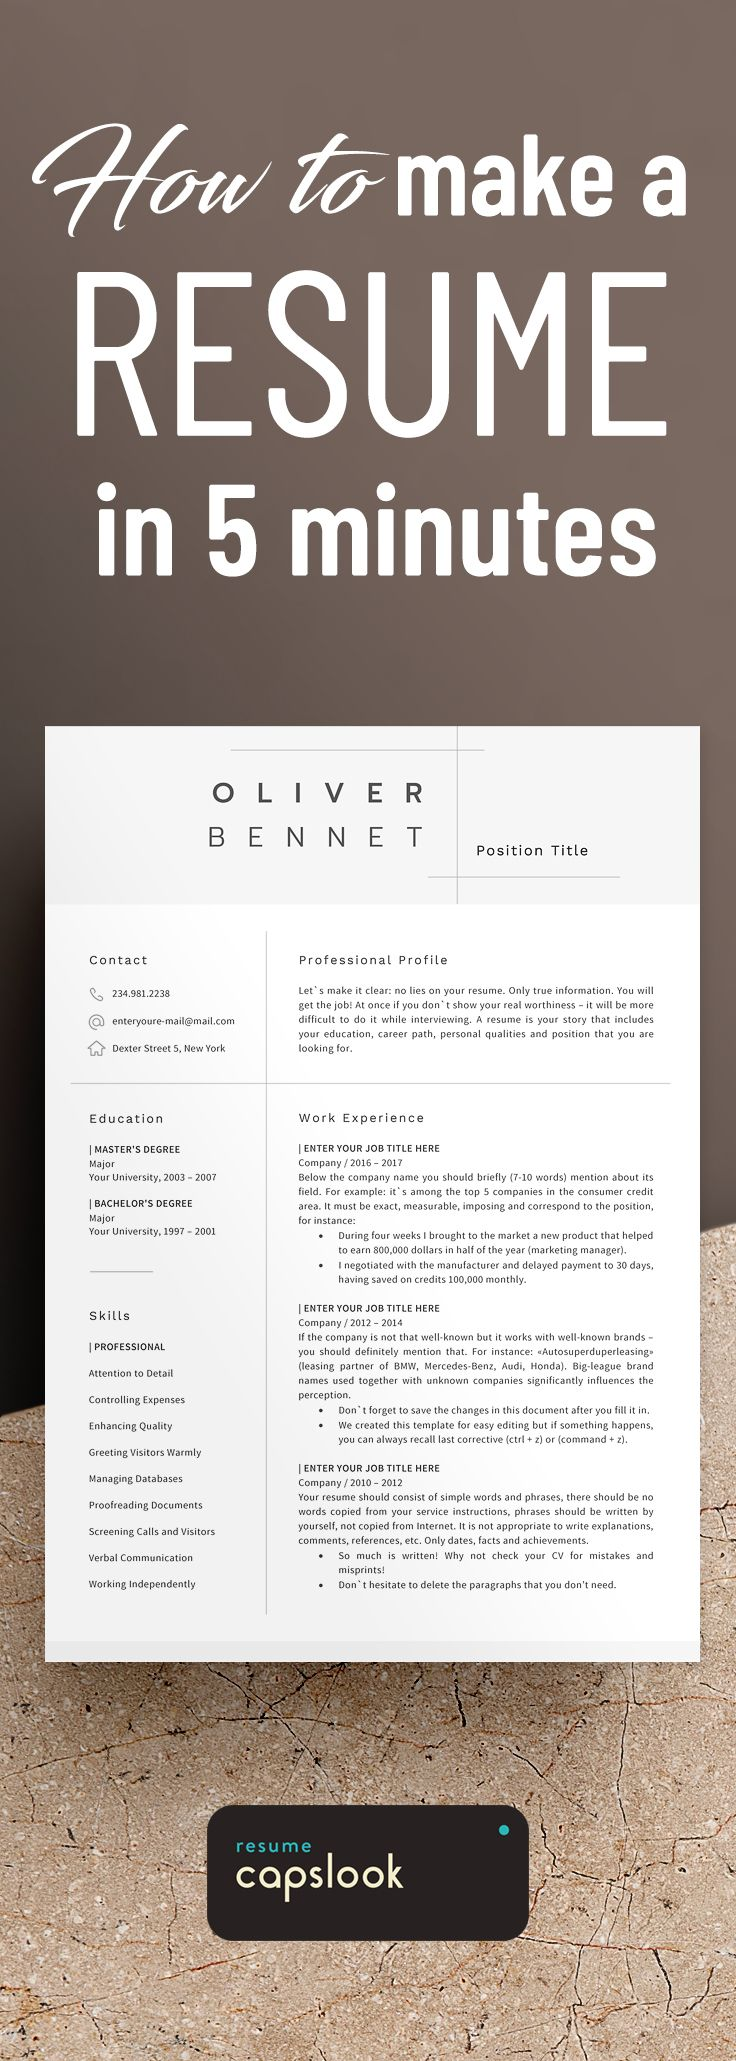 Professional resume template for legal paralegal lawyer attorney Assistant and Secretary Perfect resume for any job Start ting more job interviews 1 2 and 3 pege with cover letter